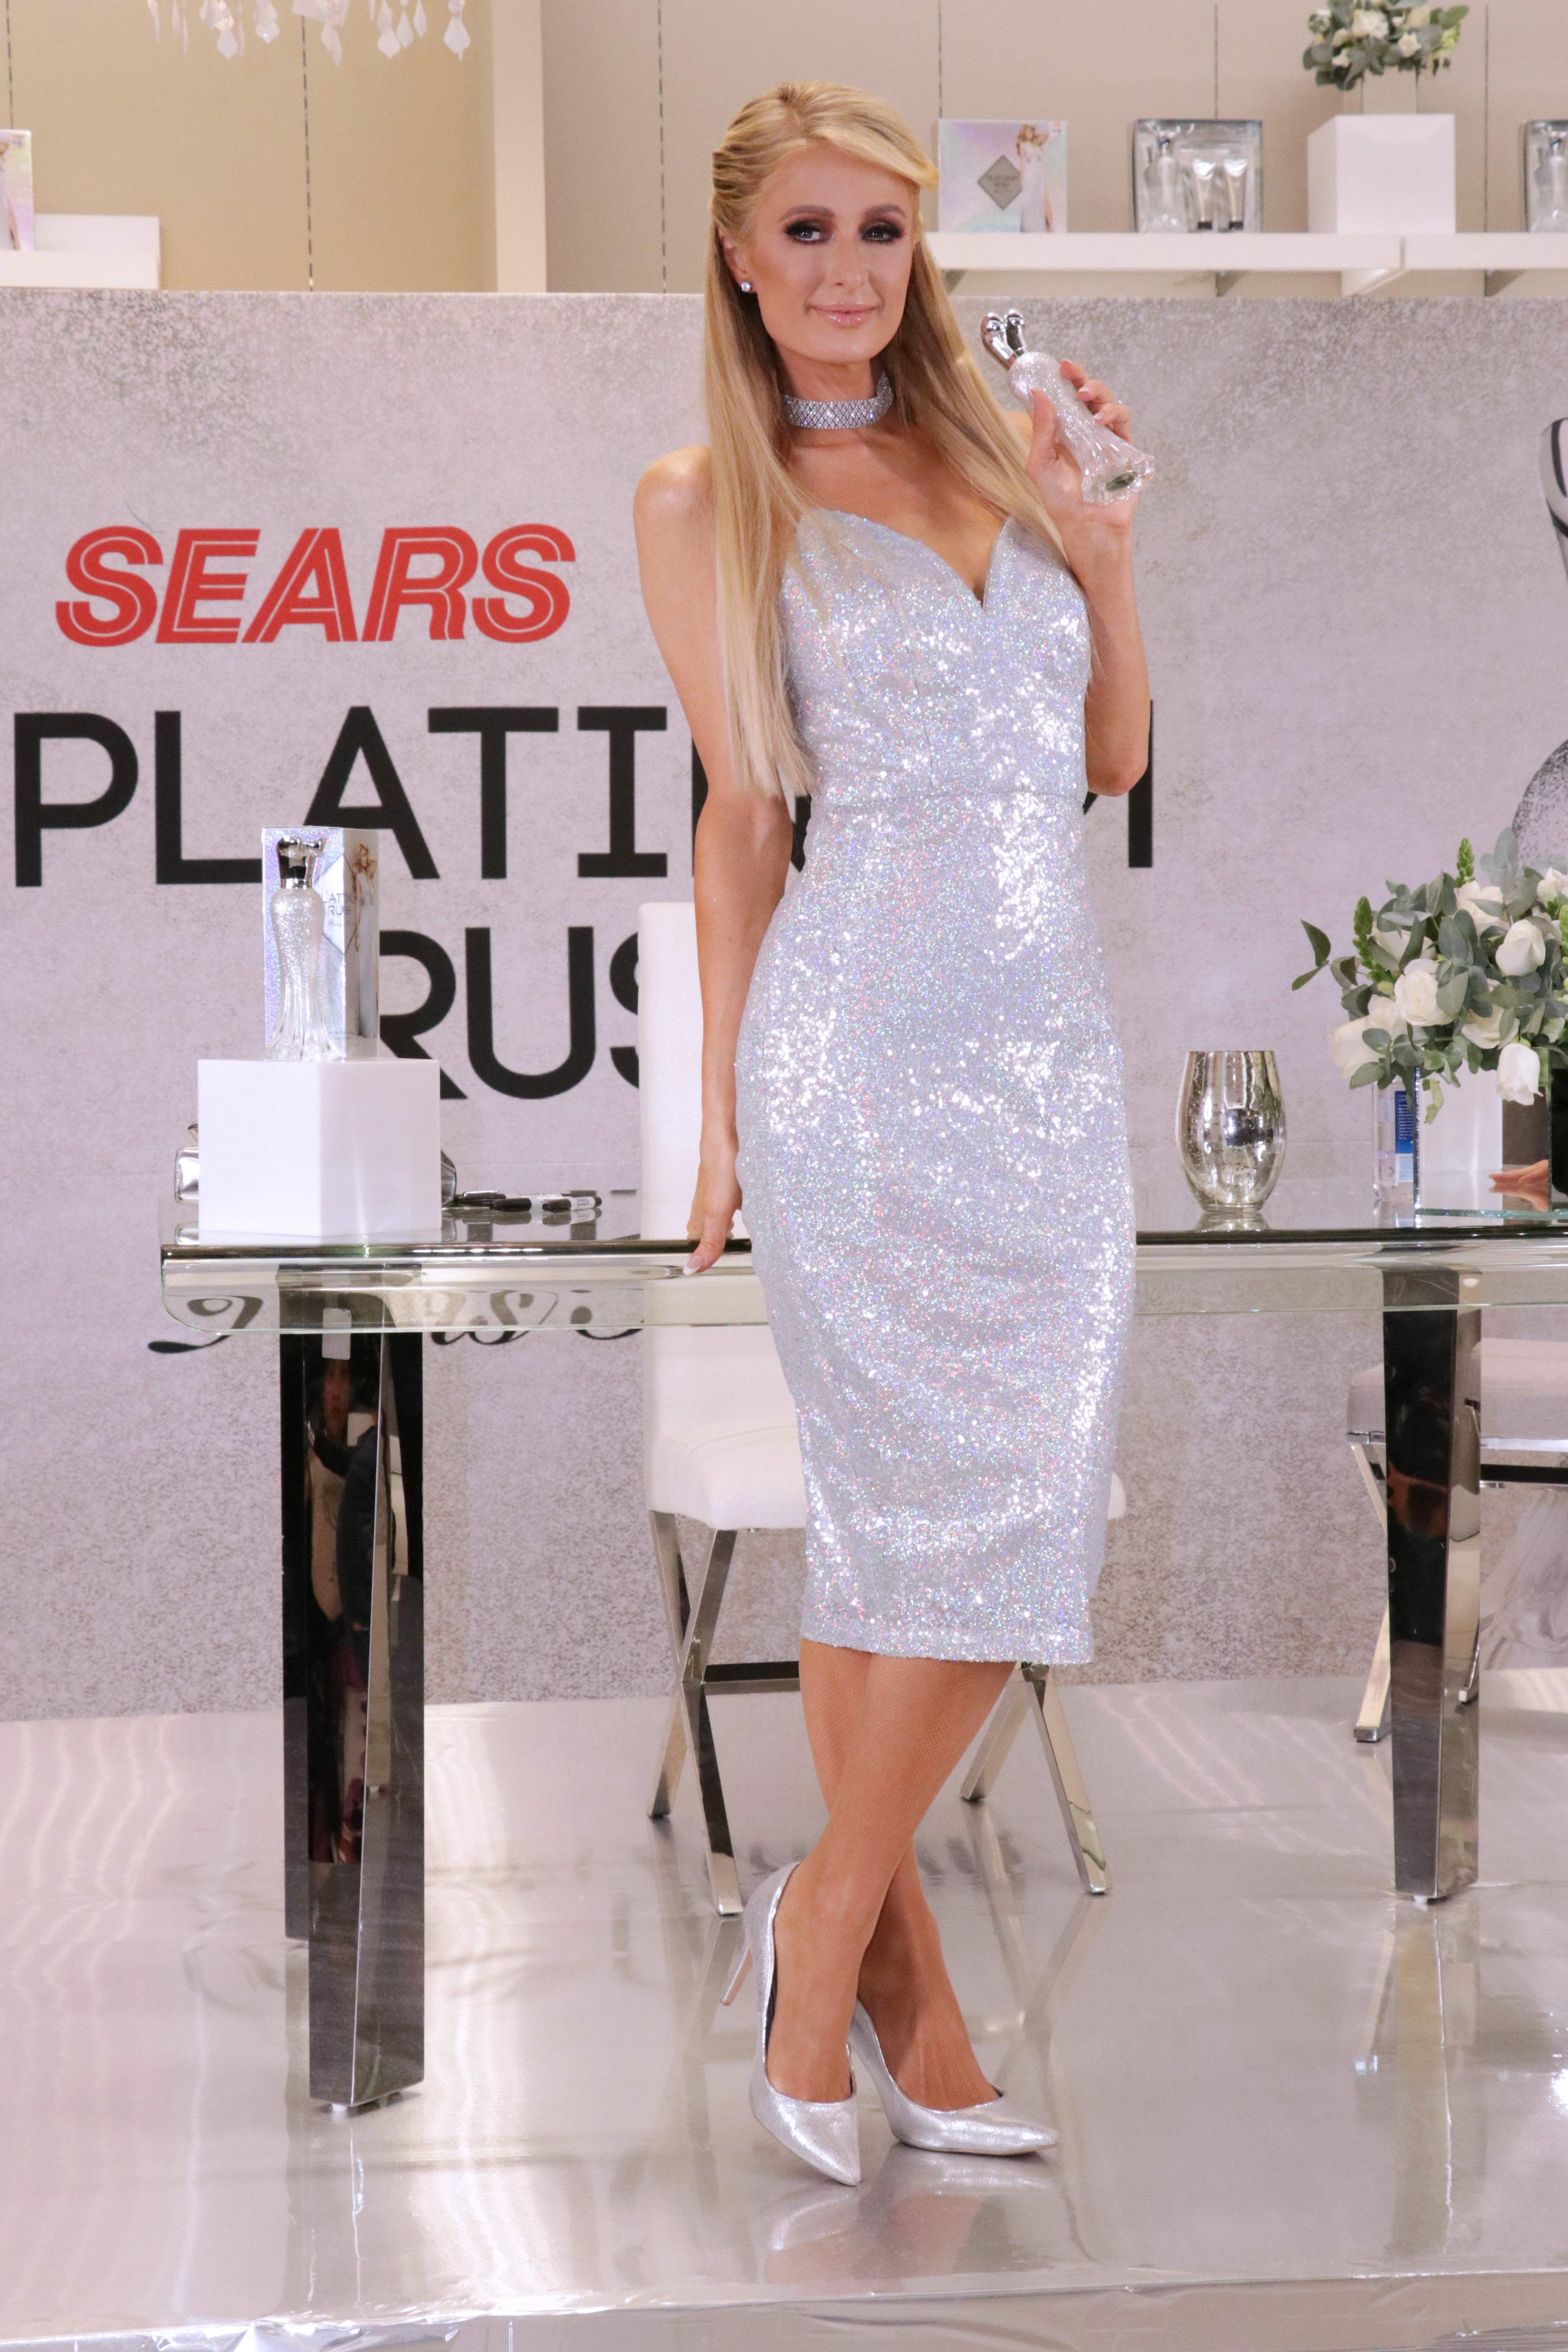 Paris Hilton Attends Platinum Rush Perfum Launch Event in Mexico City 11/11/2018